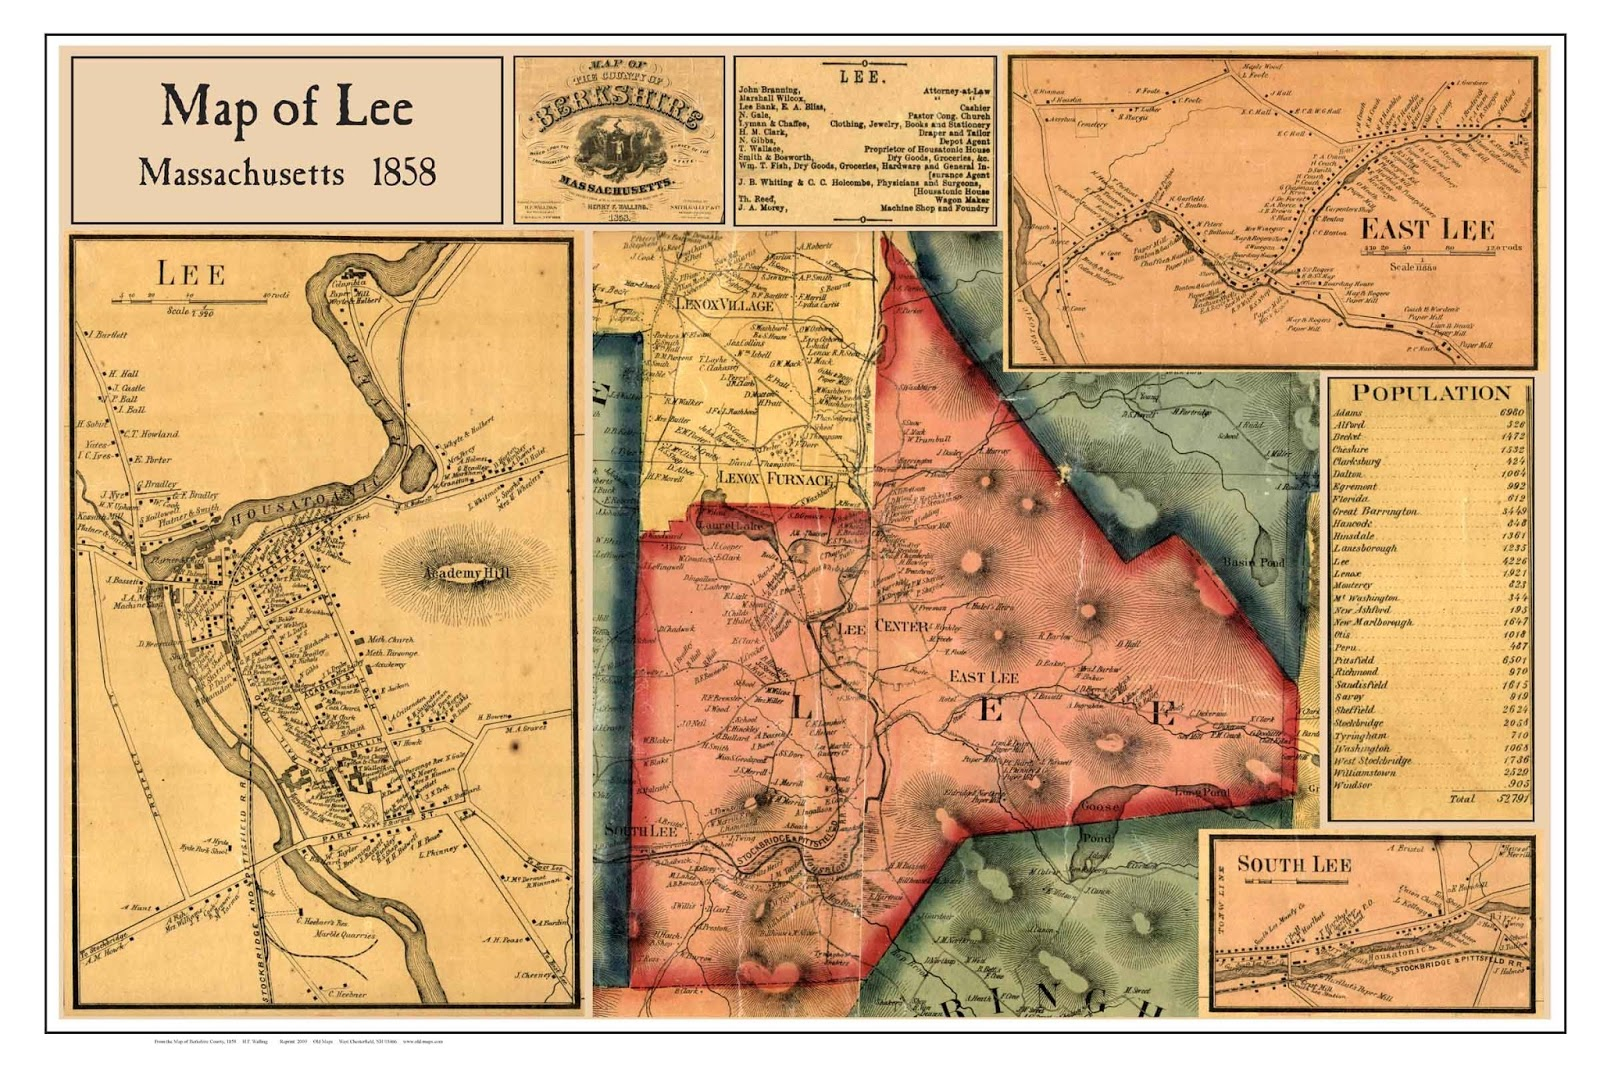 cape cod lee was incorporated in 1777 from parts of great barrington and washington it is named after american revolutionary war general charles lee